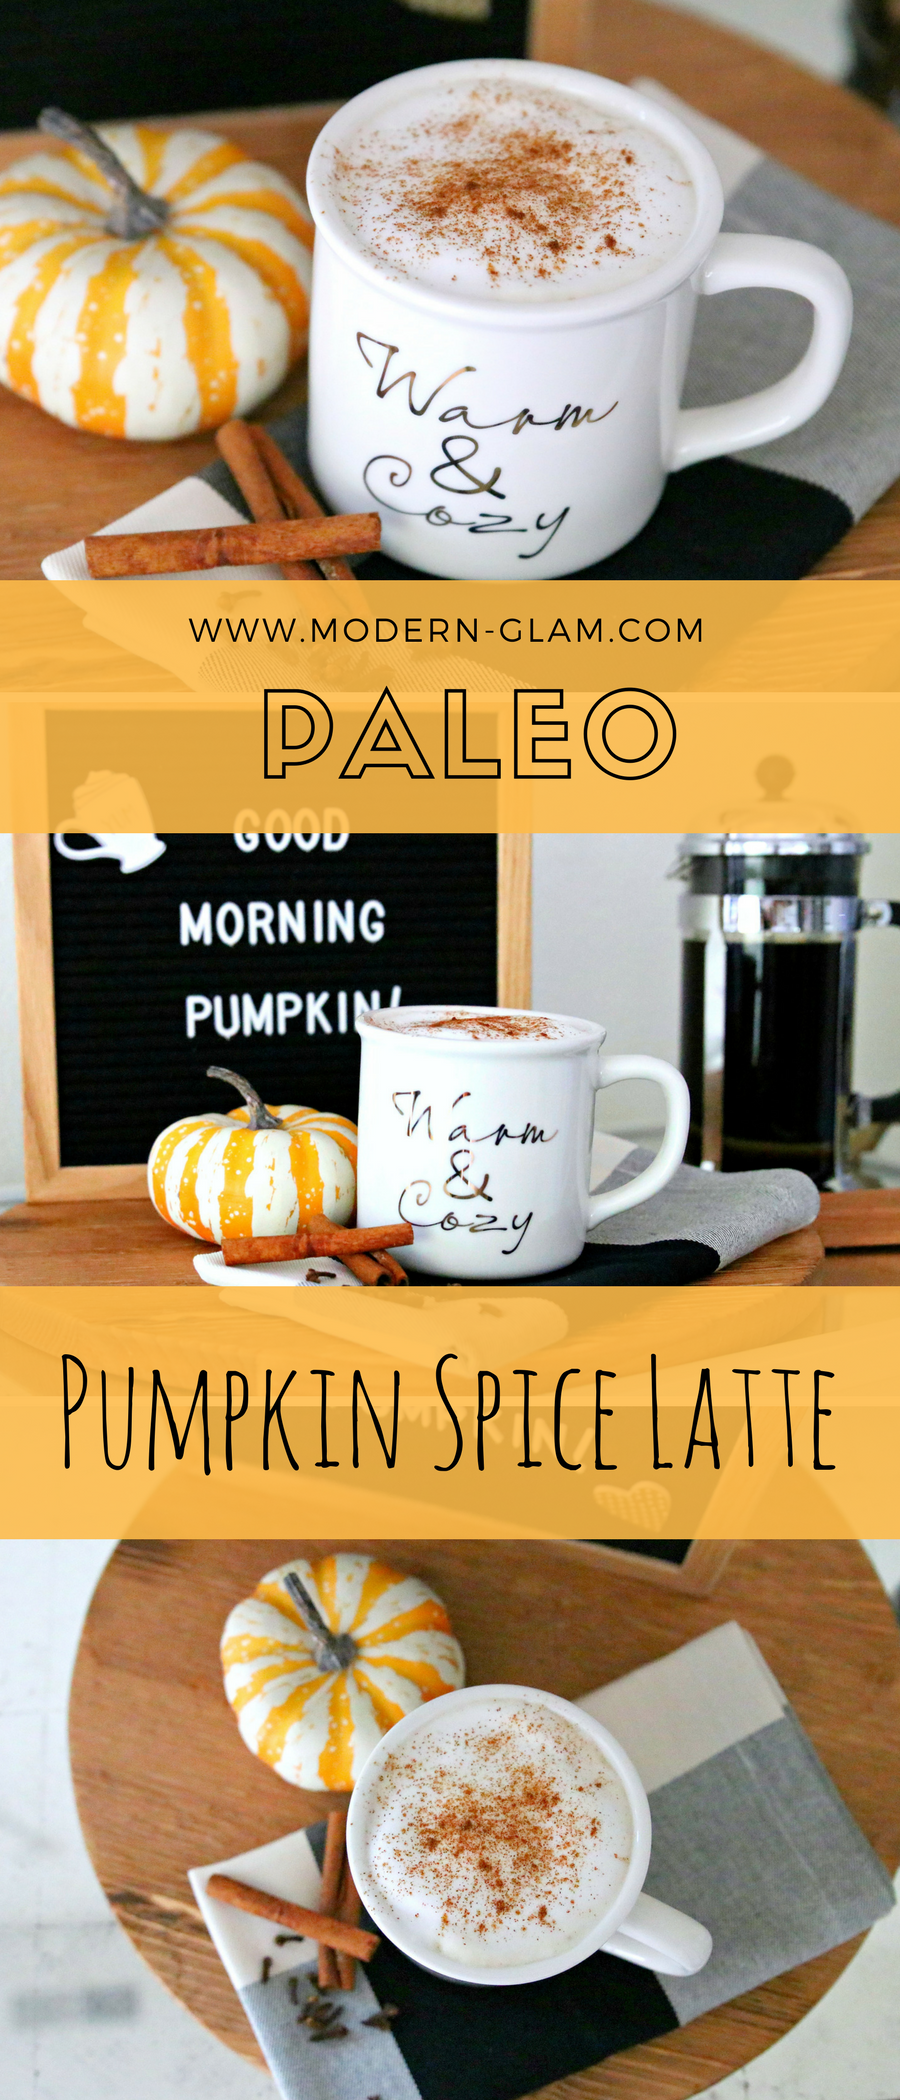 paleo pumpkin spice latte recipe